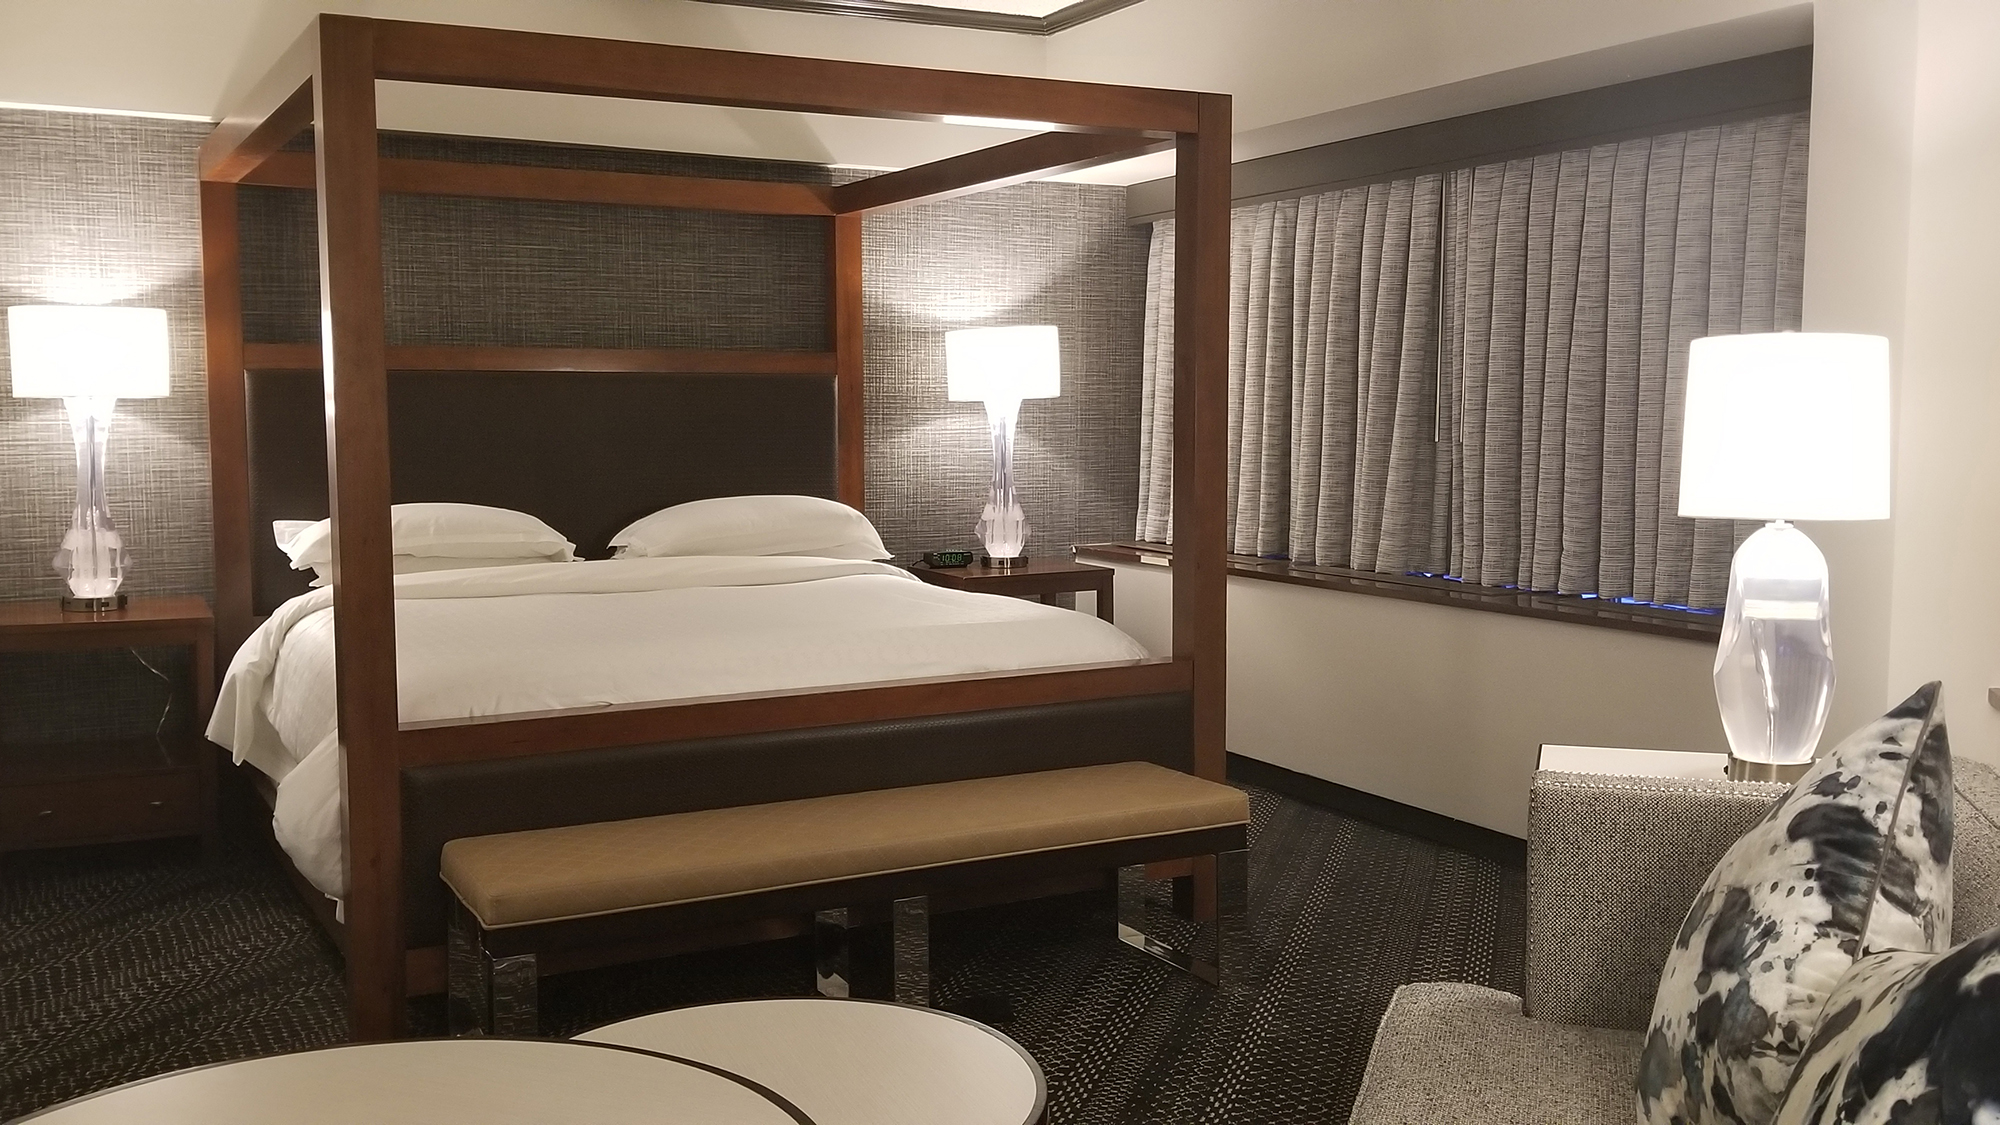 A Renovated Guestroom At The Sheraton Anchorage Hotel And Spa.